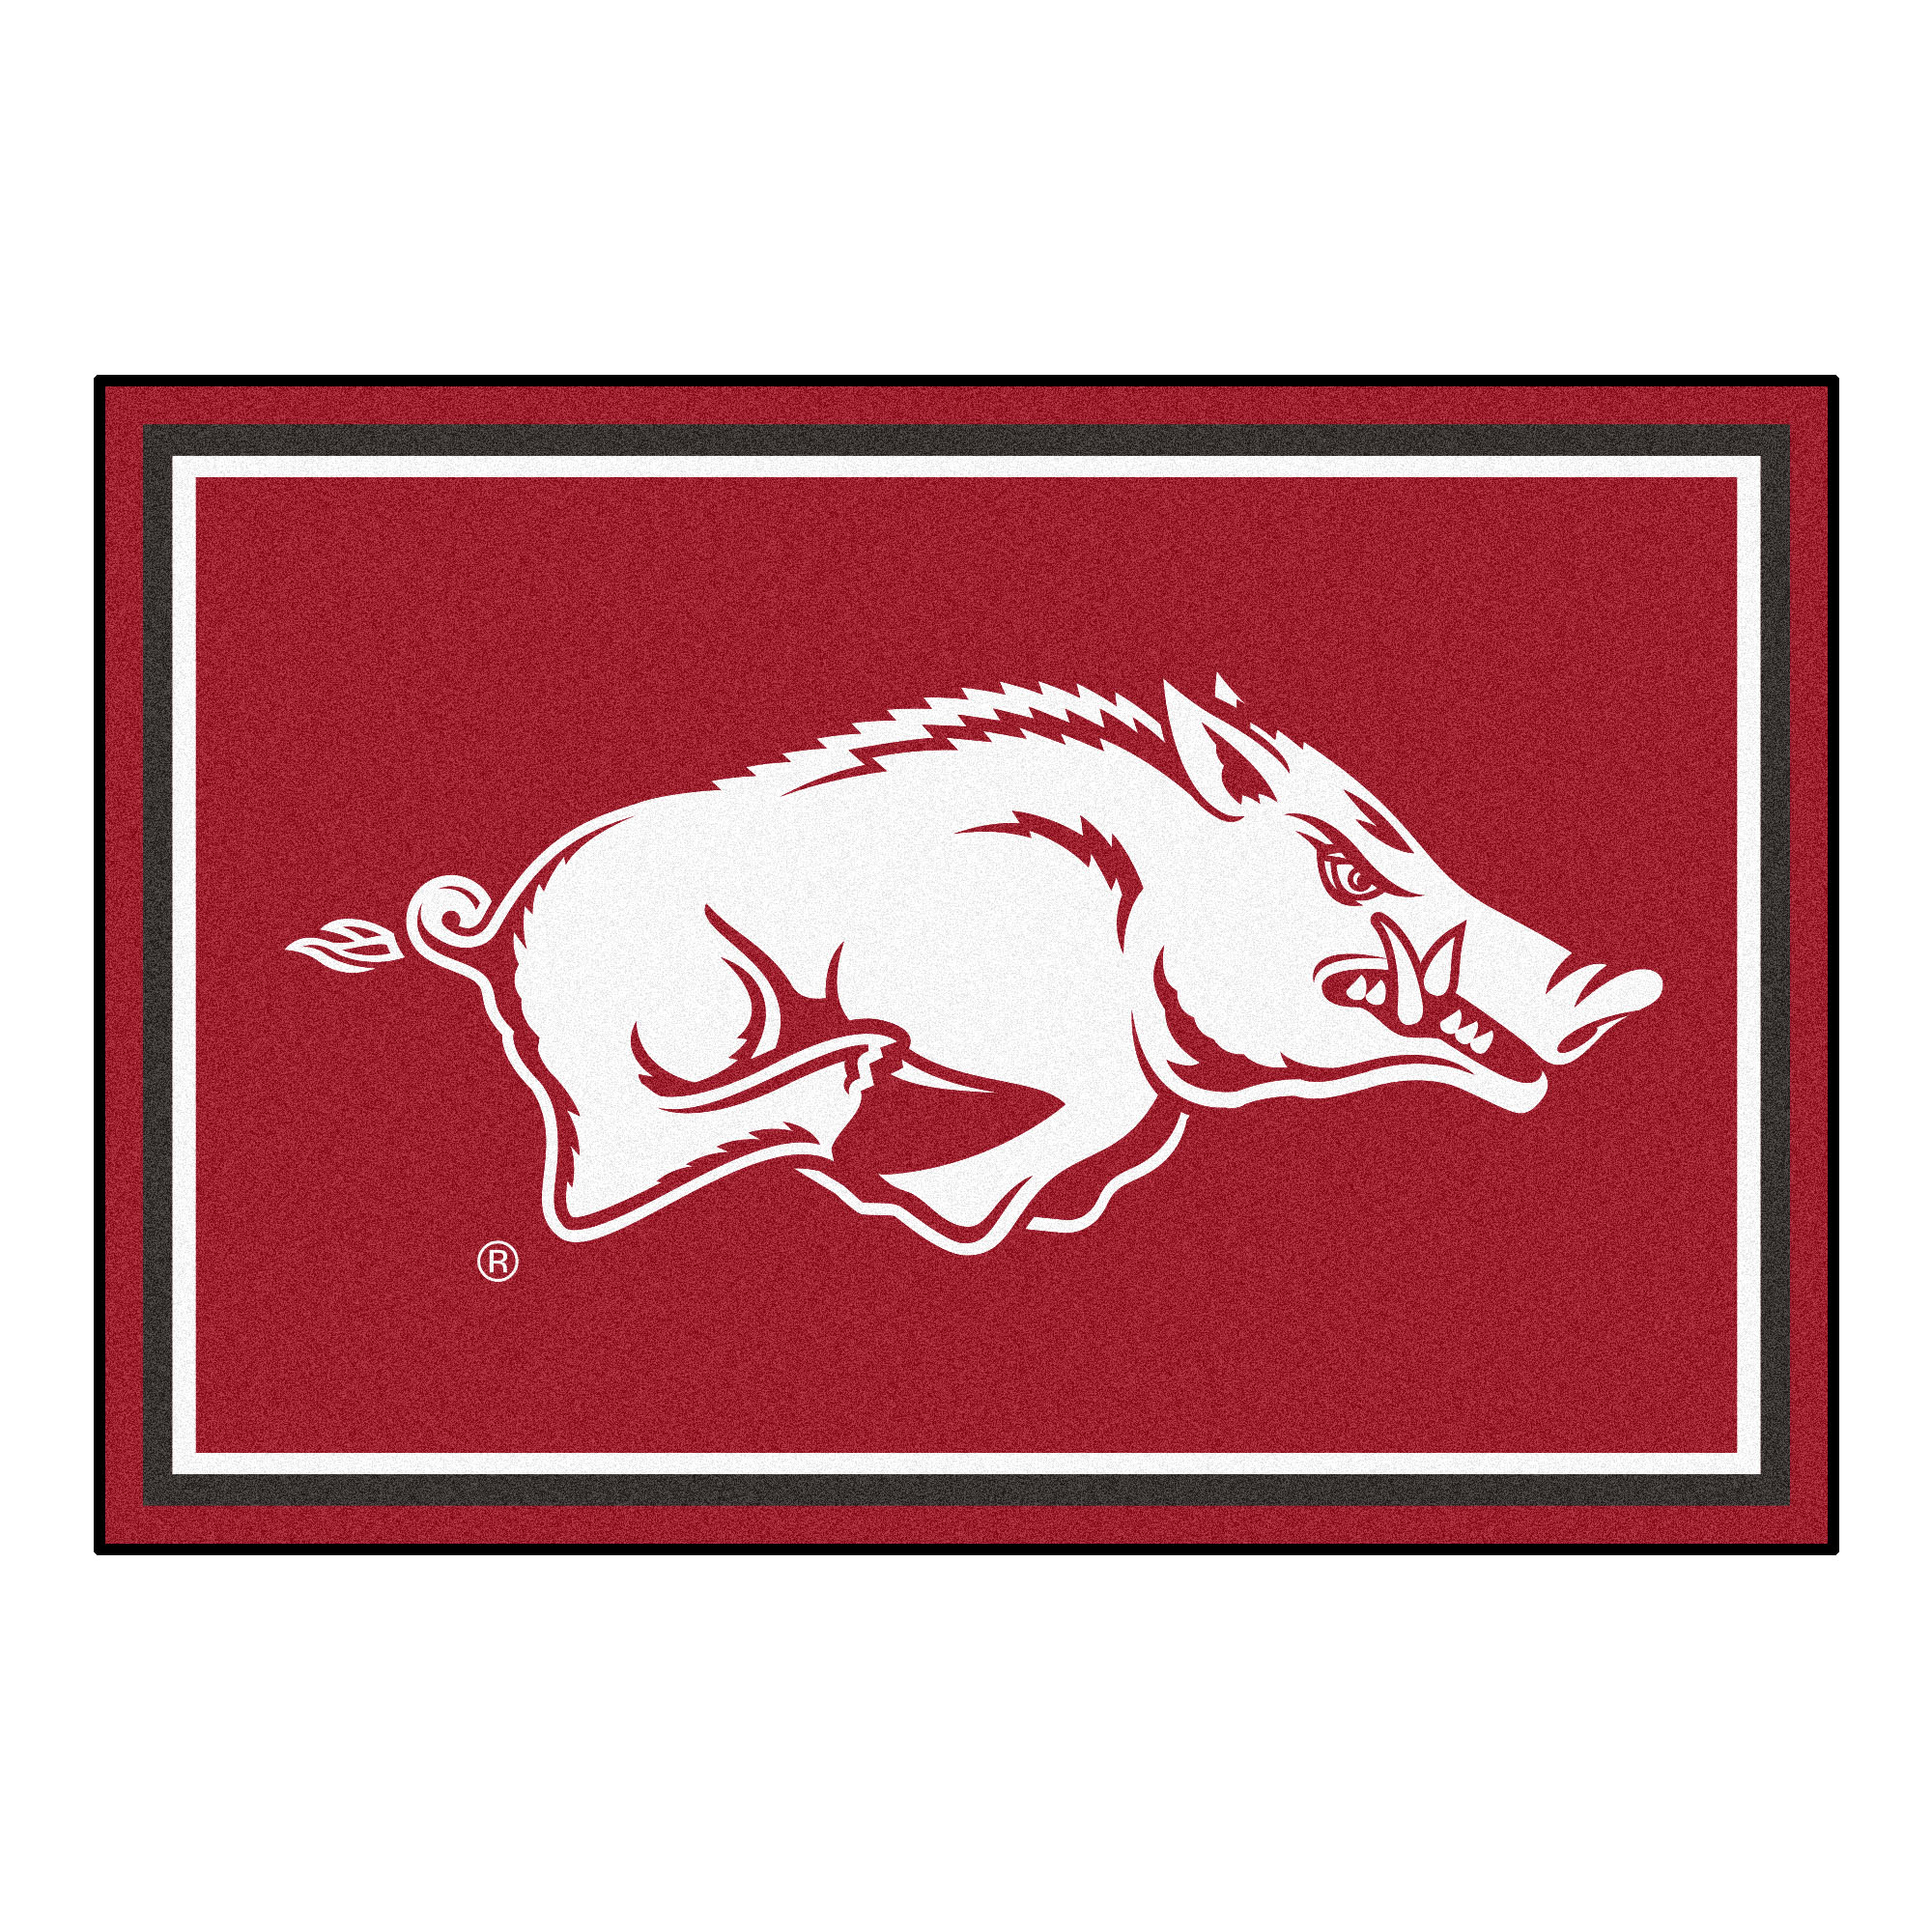 6616 Fanmats College NCAA University of Arkansas 59.5 Inch x 88 Inch Nylon Face durable Non-skid Chromojet-printed 5x8 Plush Rug